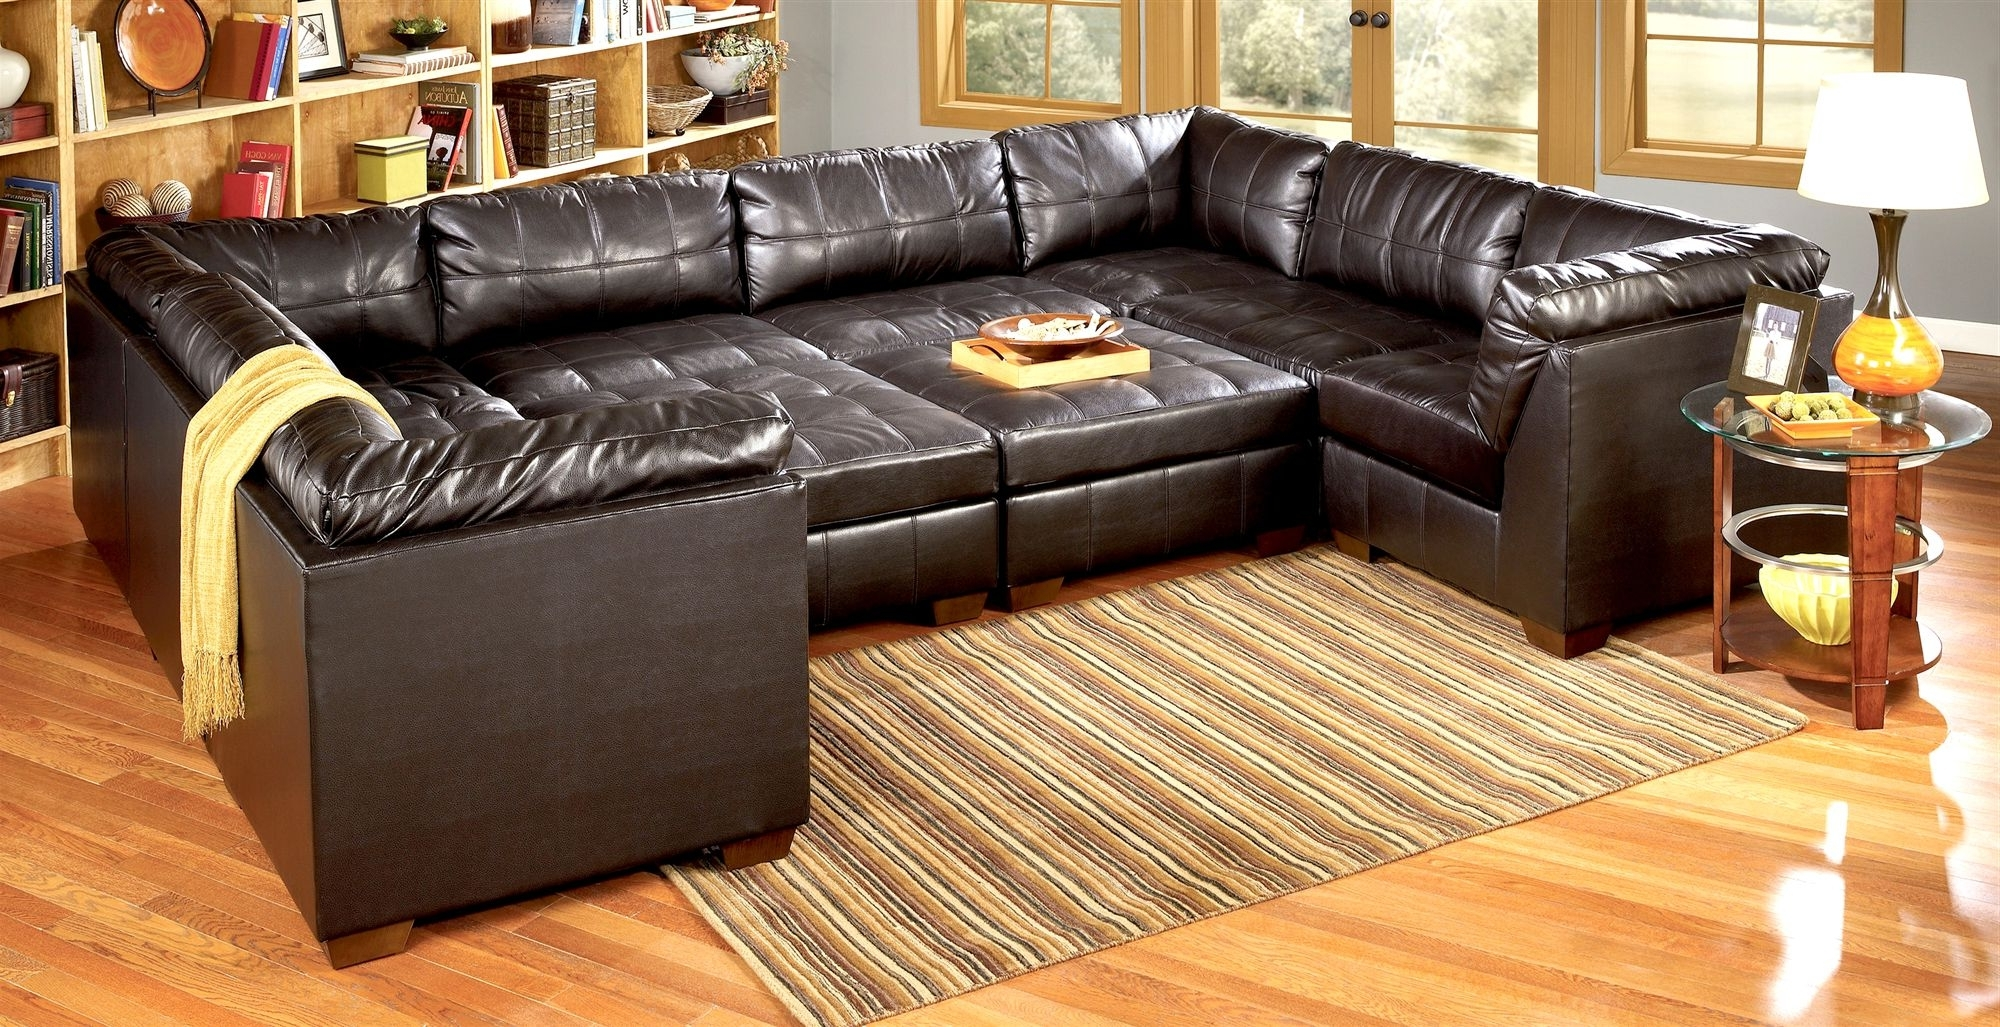 2019 Sectional Sofas For Small Doorways Pertaining To Living Room Furniture : Small Sectional Sofa Sectional Sofas (View 12 of 20)